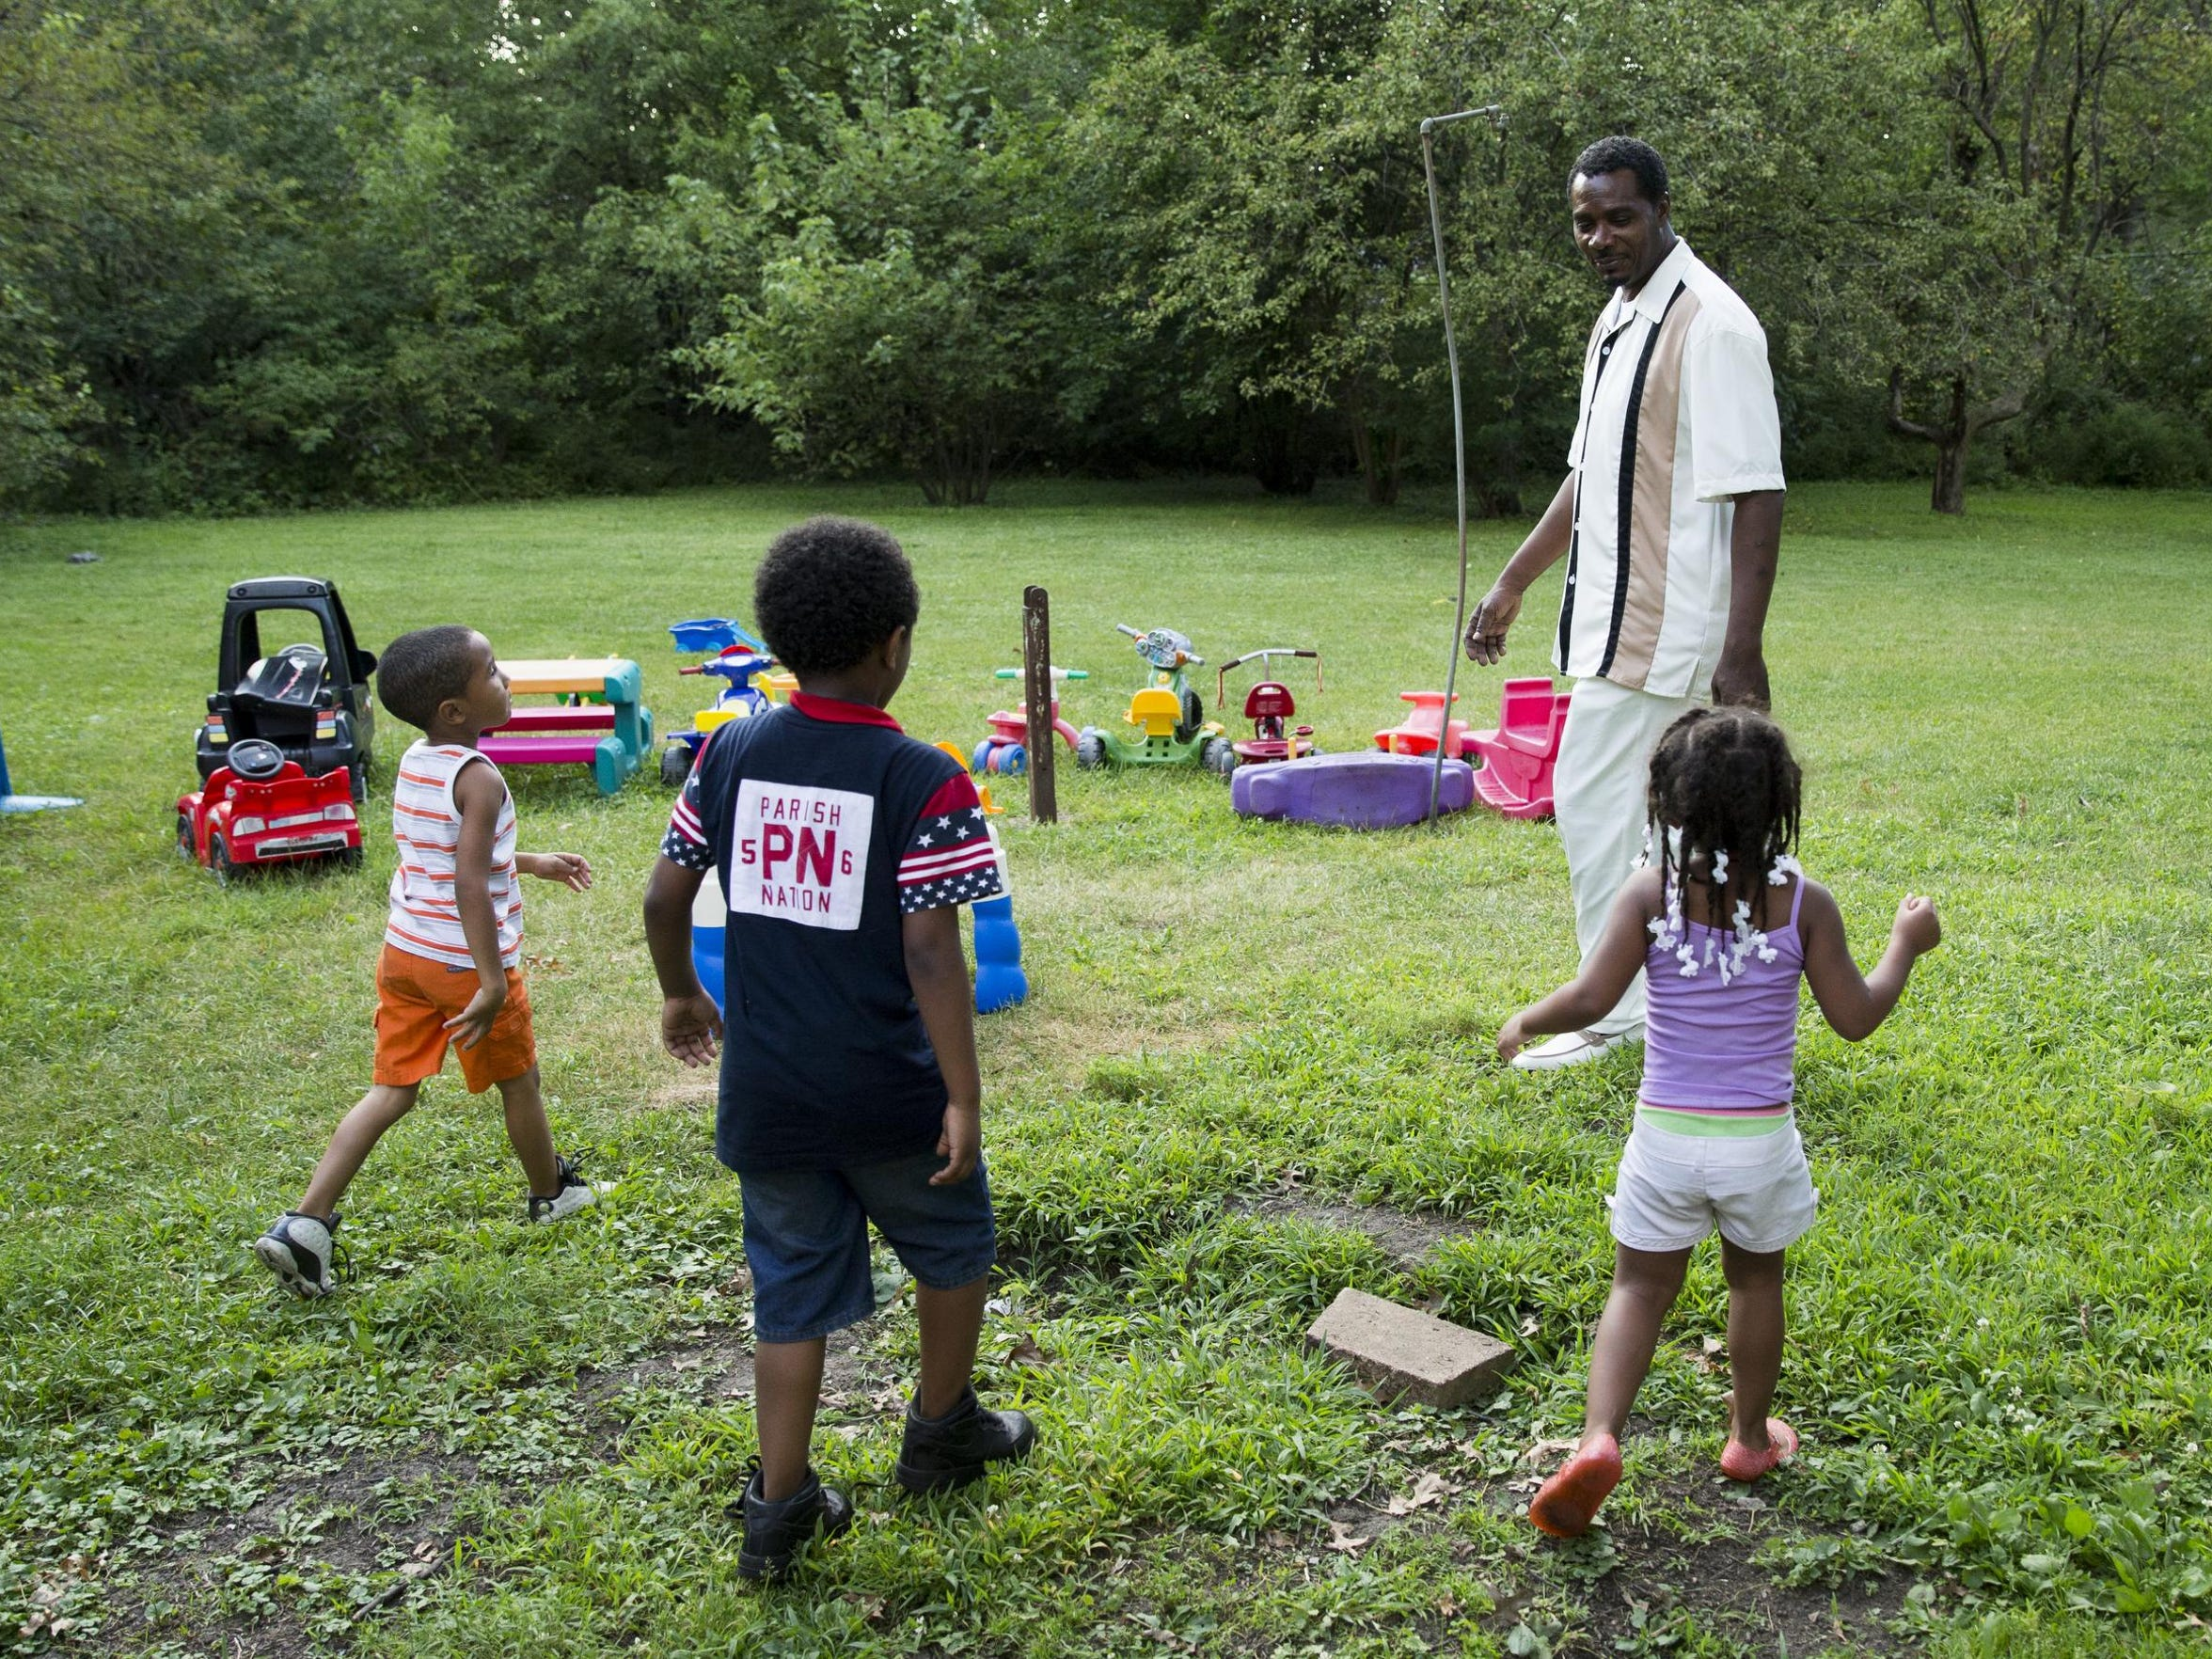 Keith Cooper plays with grandchildren at his home in